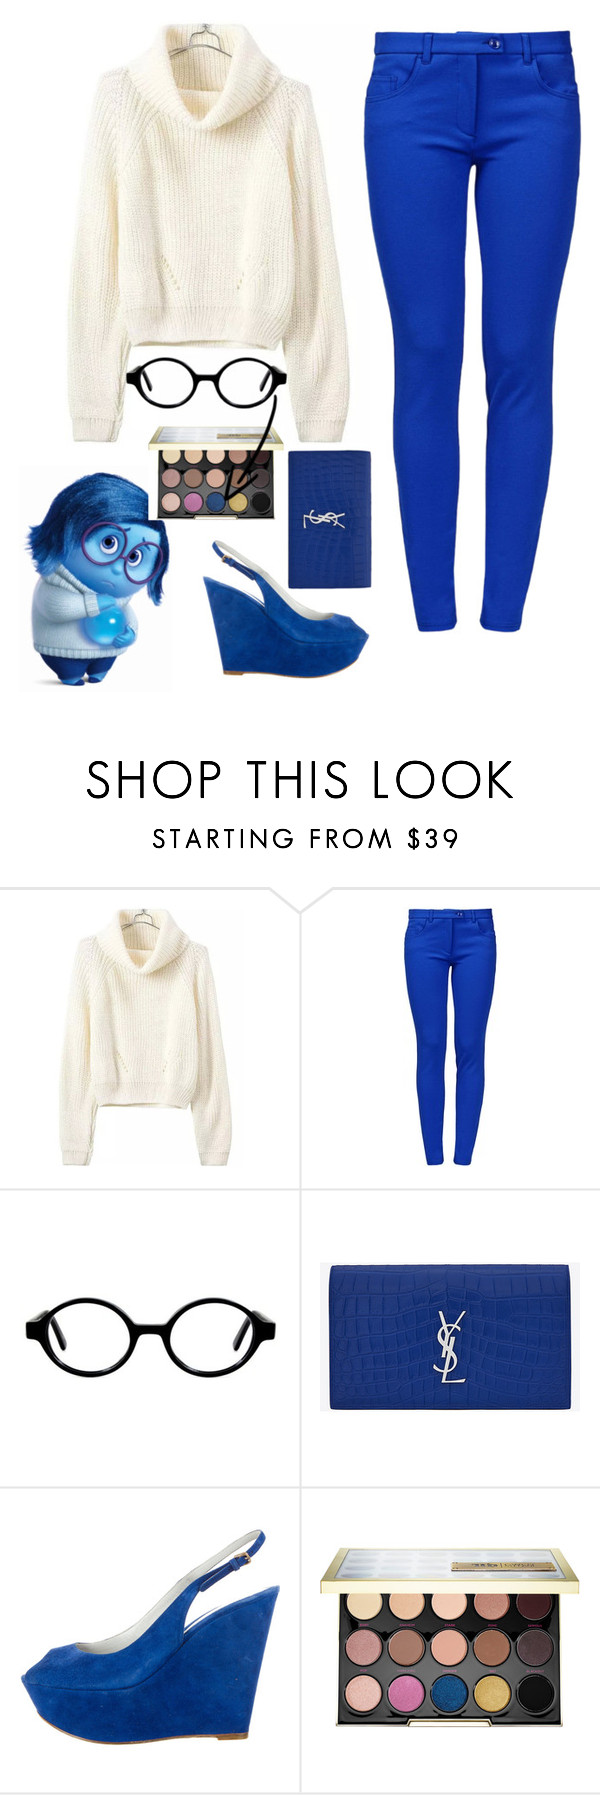 """""""Inside out - sadness"""" by shexigshexicorn ❤ liked on Polyvore featuring Boutique Moschino, Ernest Hemingway, Yves Saint Laurent, Sergio Rossi and Urban Decay"""